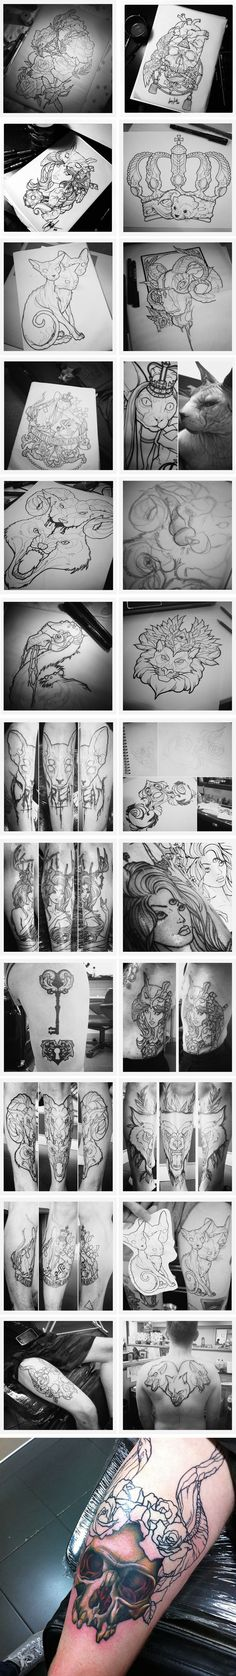 Sara Fabel Art OK the fourth one down from left ,three eyes version rear calf ,maybe over inner calf flowing Dream Tattoos, Future Tattoos, Love Tattoos, Beautiful Tattoos, Body Art Tattoos, Piercings, Tattoo Sketches, Tattoo Drawings, Sara Fabel